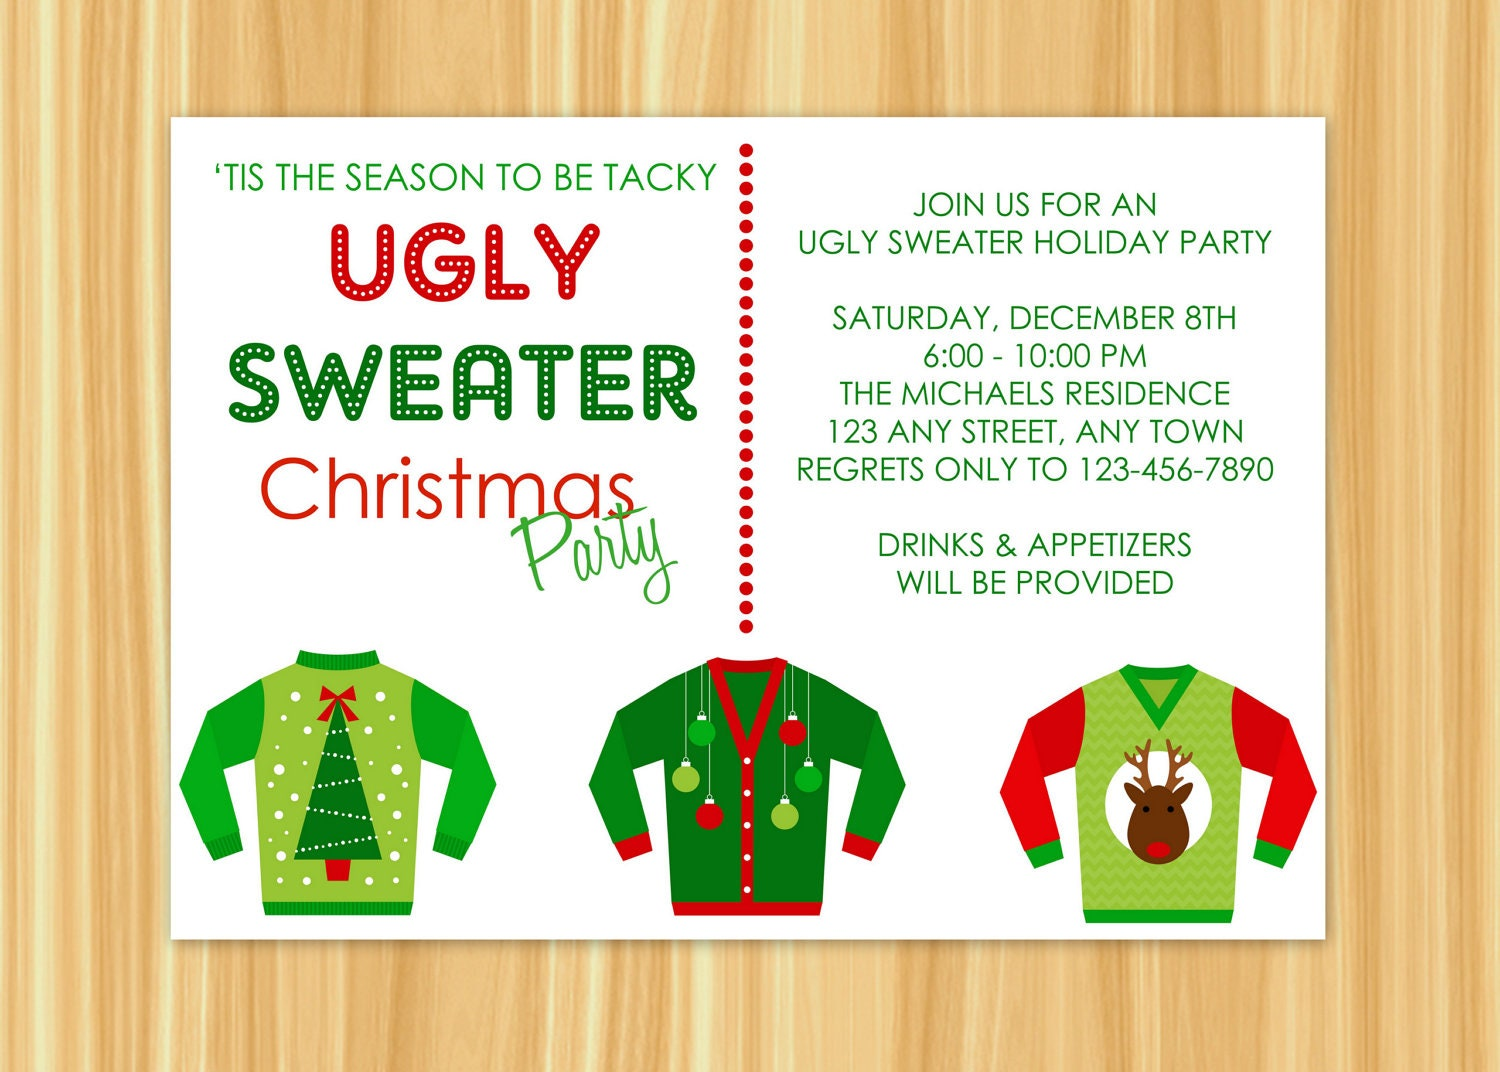 Ugly Sweater Party Invitation Wording gangcraftnet